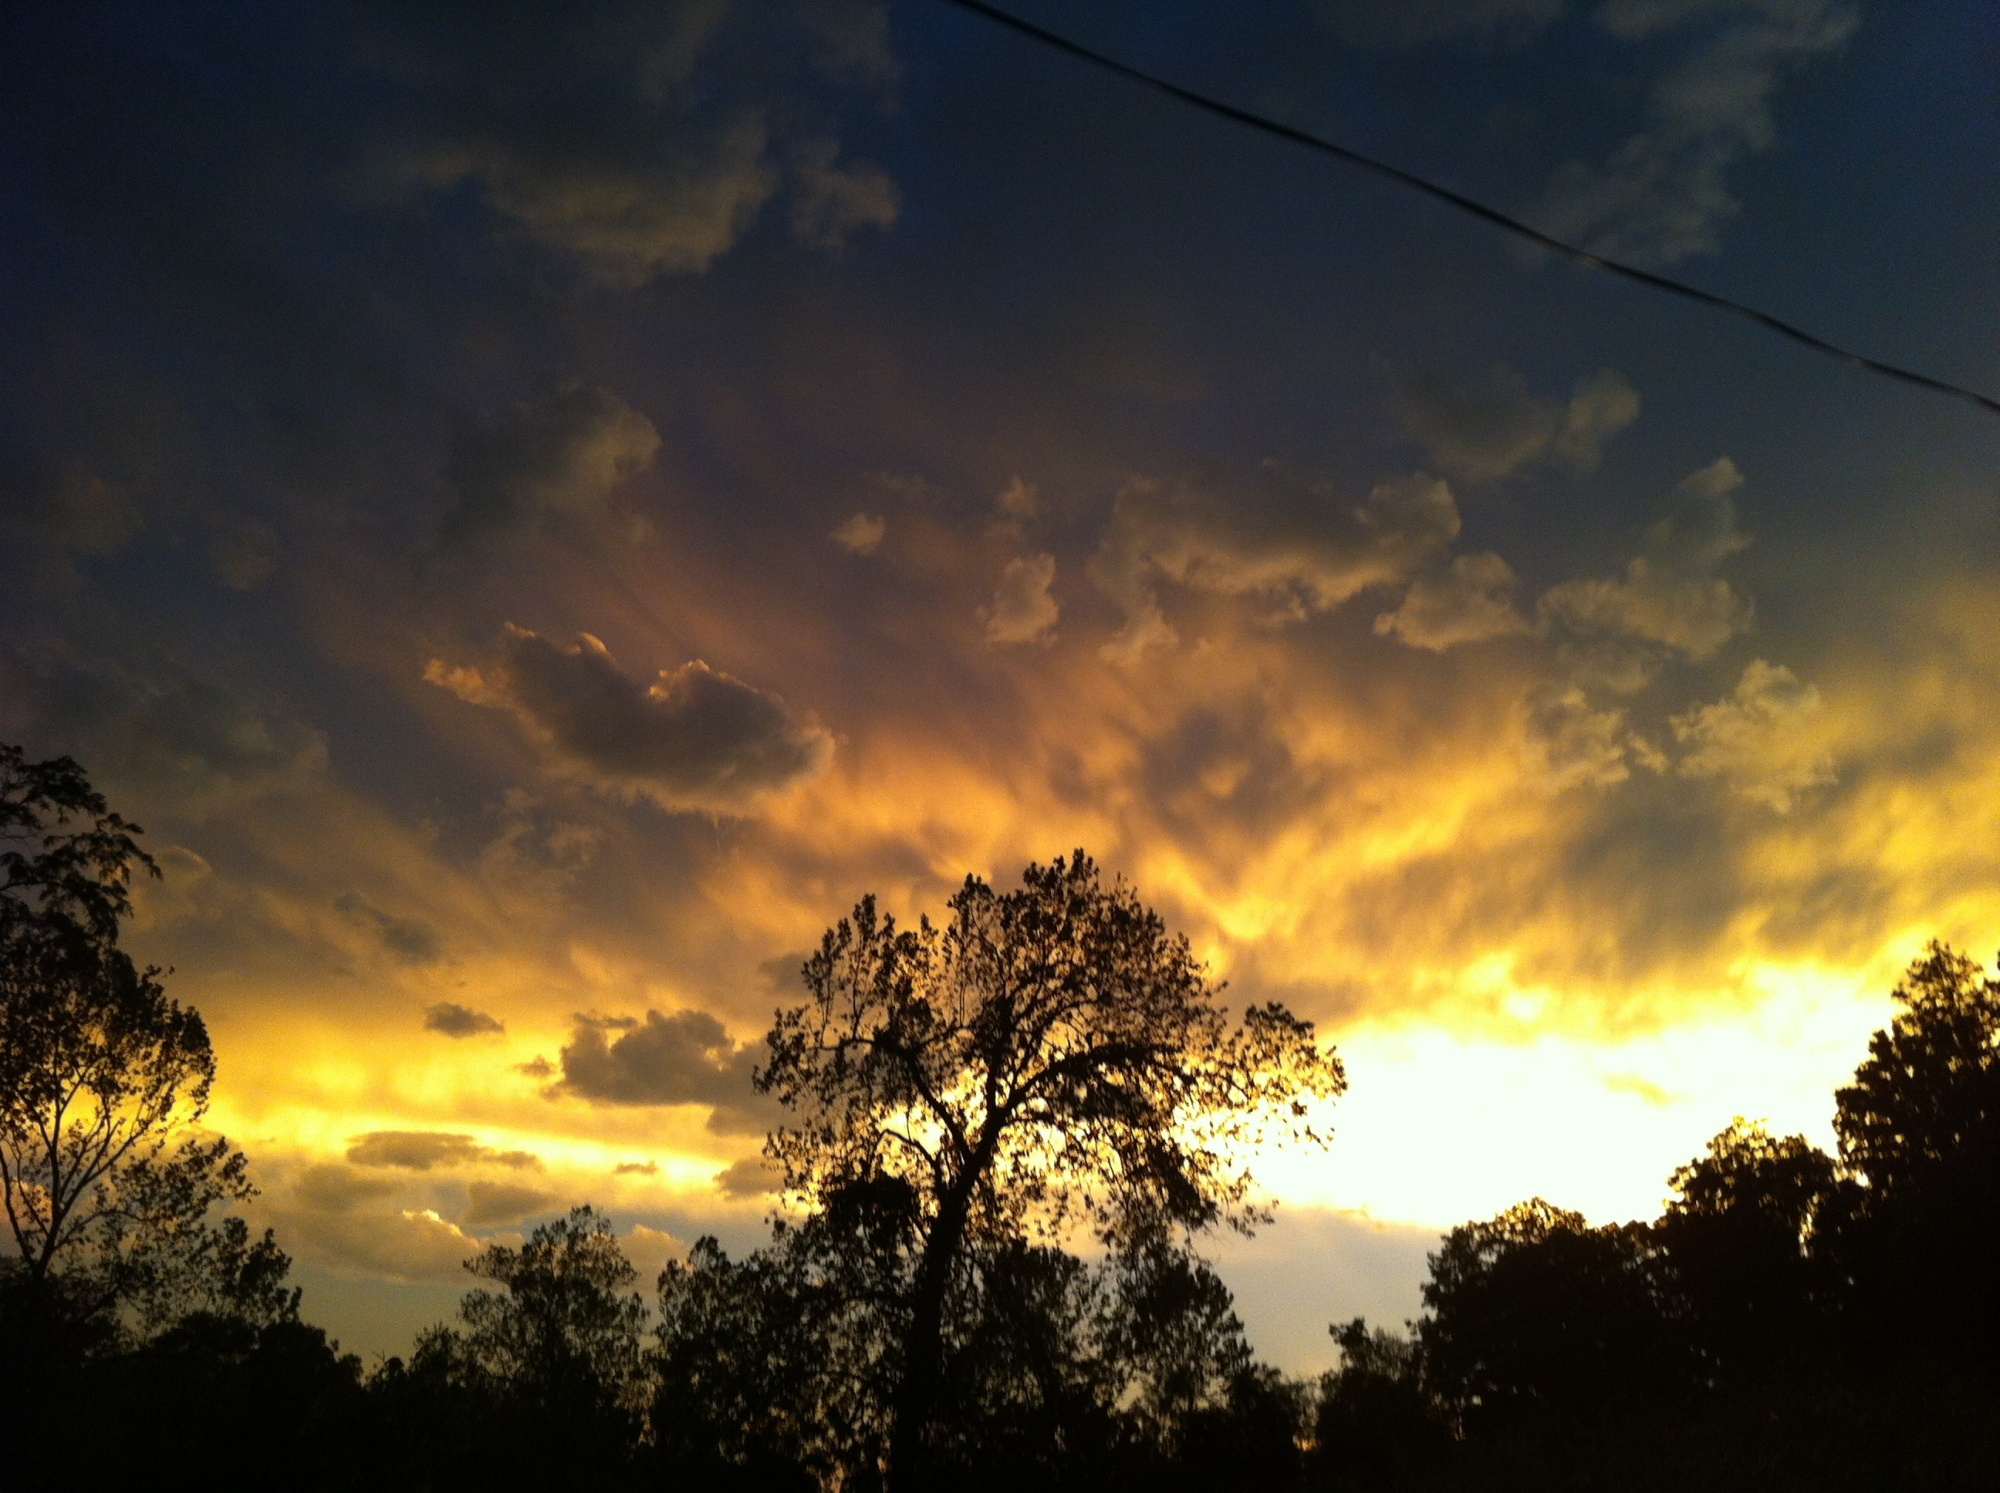 The amazing sky and sunset that followed the storms. Lincoln/Cane Hill area. Submitted by Christie McKee